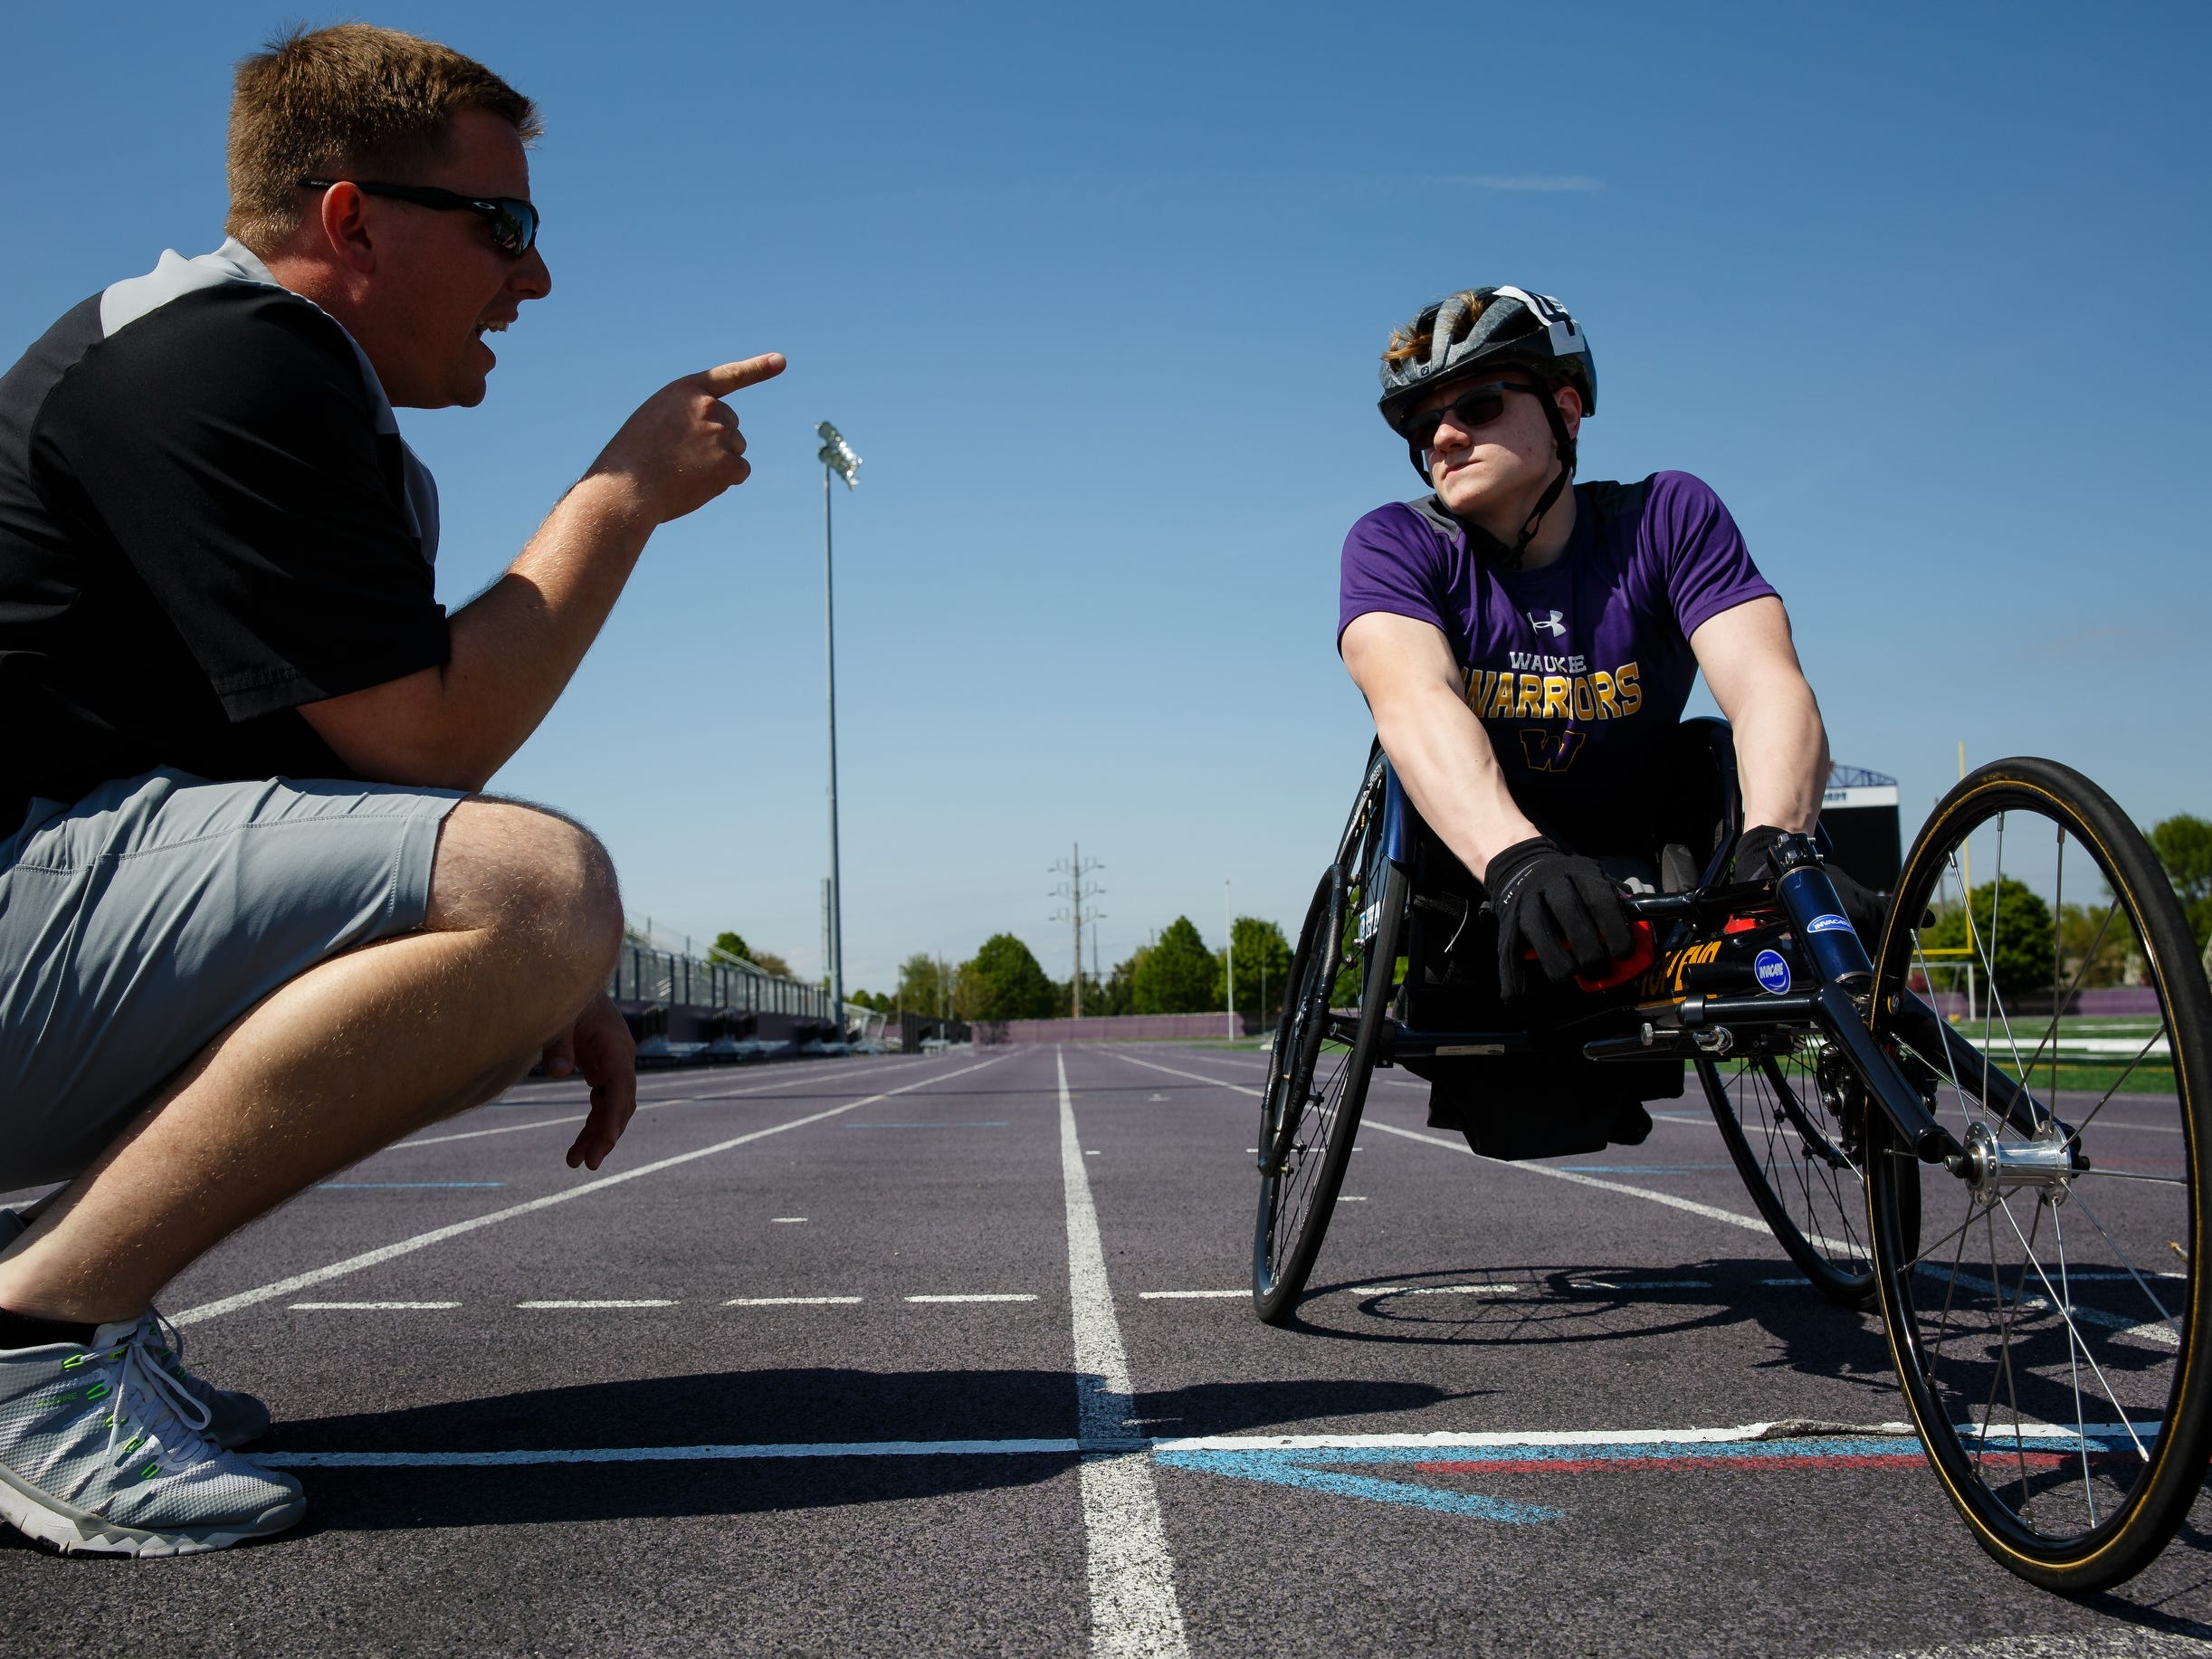 Working with assistant coach Gage Mohs, left, Evan Correll discusses strategy for the 800-meter race at Iowa's state track and field meet on Tuesday, May 14, 2019, in Waukee. For the first year Iowa is offering four track races to wheelchair athletes and Correll has a chance to win all of them.